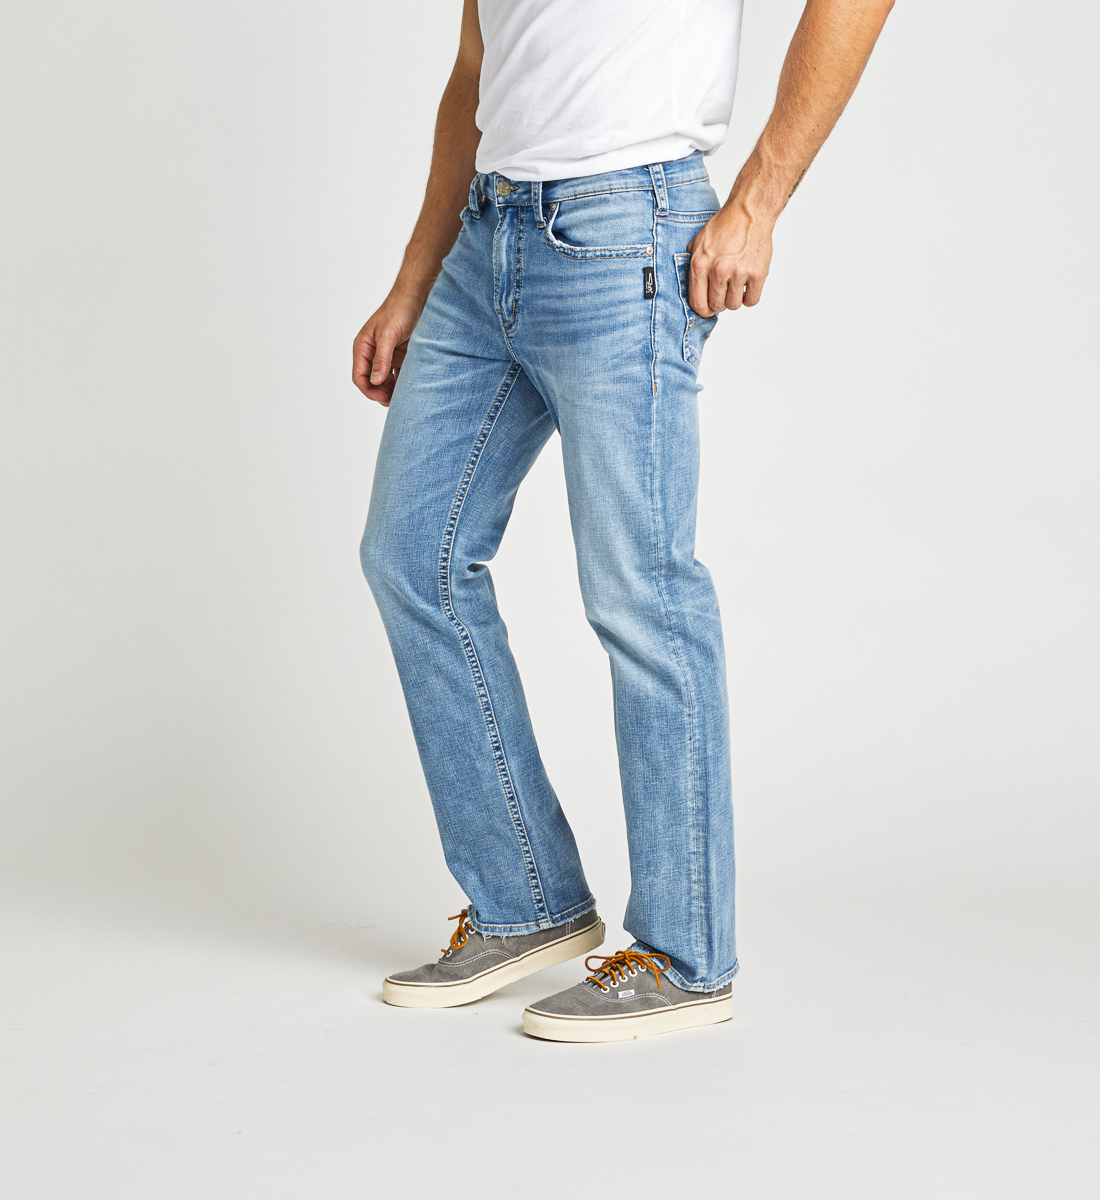 Grayson Easy Fit Straight Leg Jeans Side